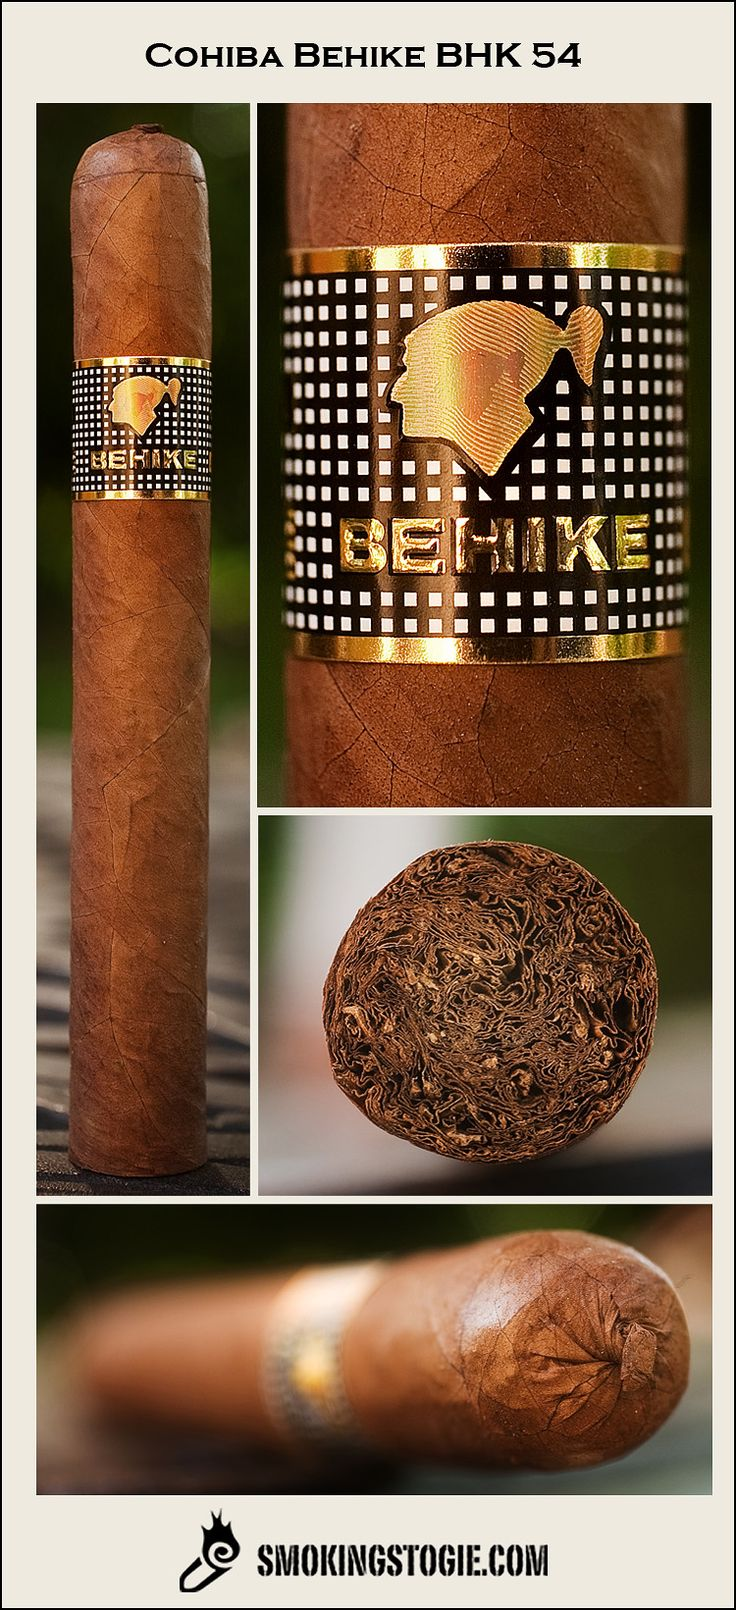 COHIBA BEHIKE BHK54 location Cuba Bold- notes of coffee beans, with an earthy core leading to a leathery smoke | Raddest Men's Fashion Looks On The Internet: http://www.raddestlooks.org